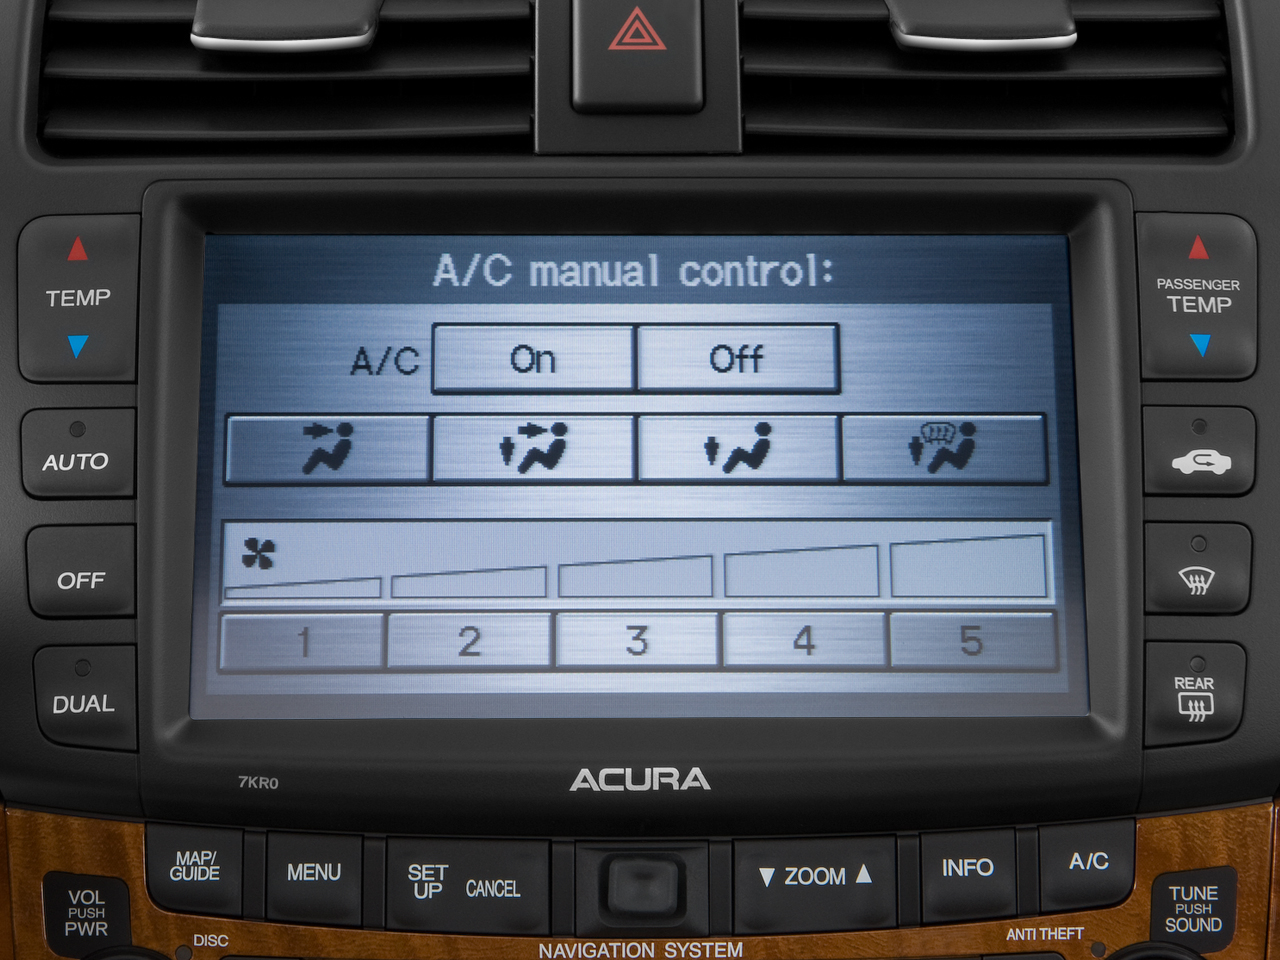 2004 acura tsx navigation system problems